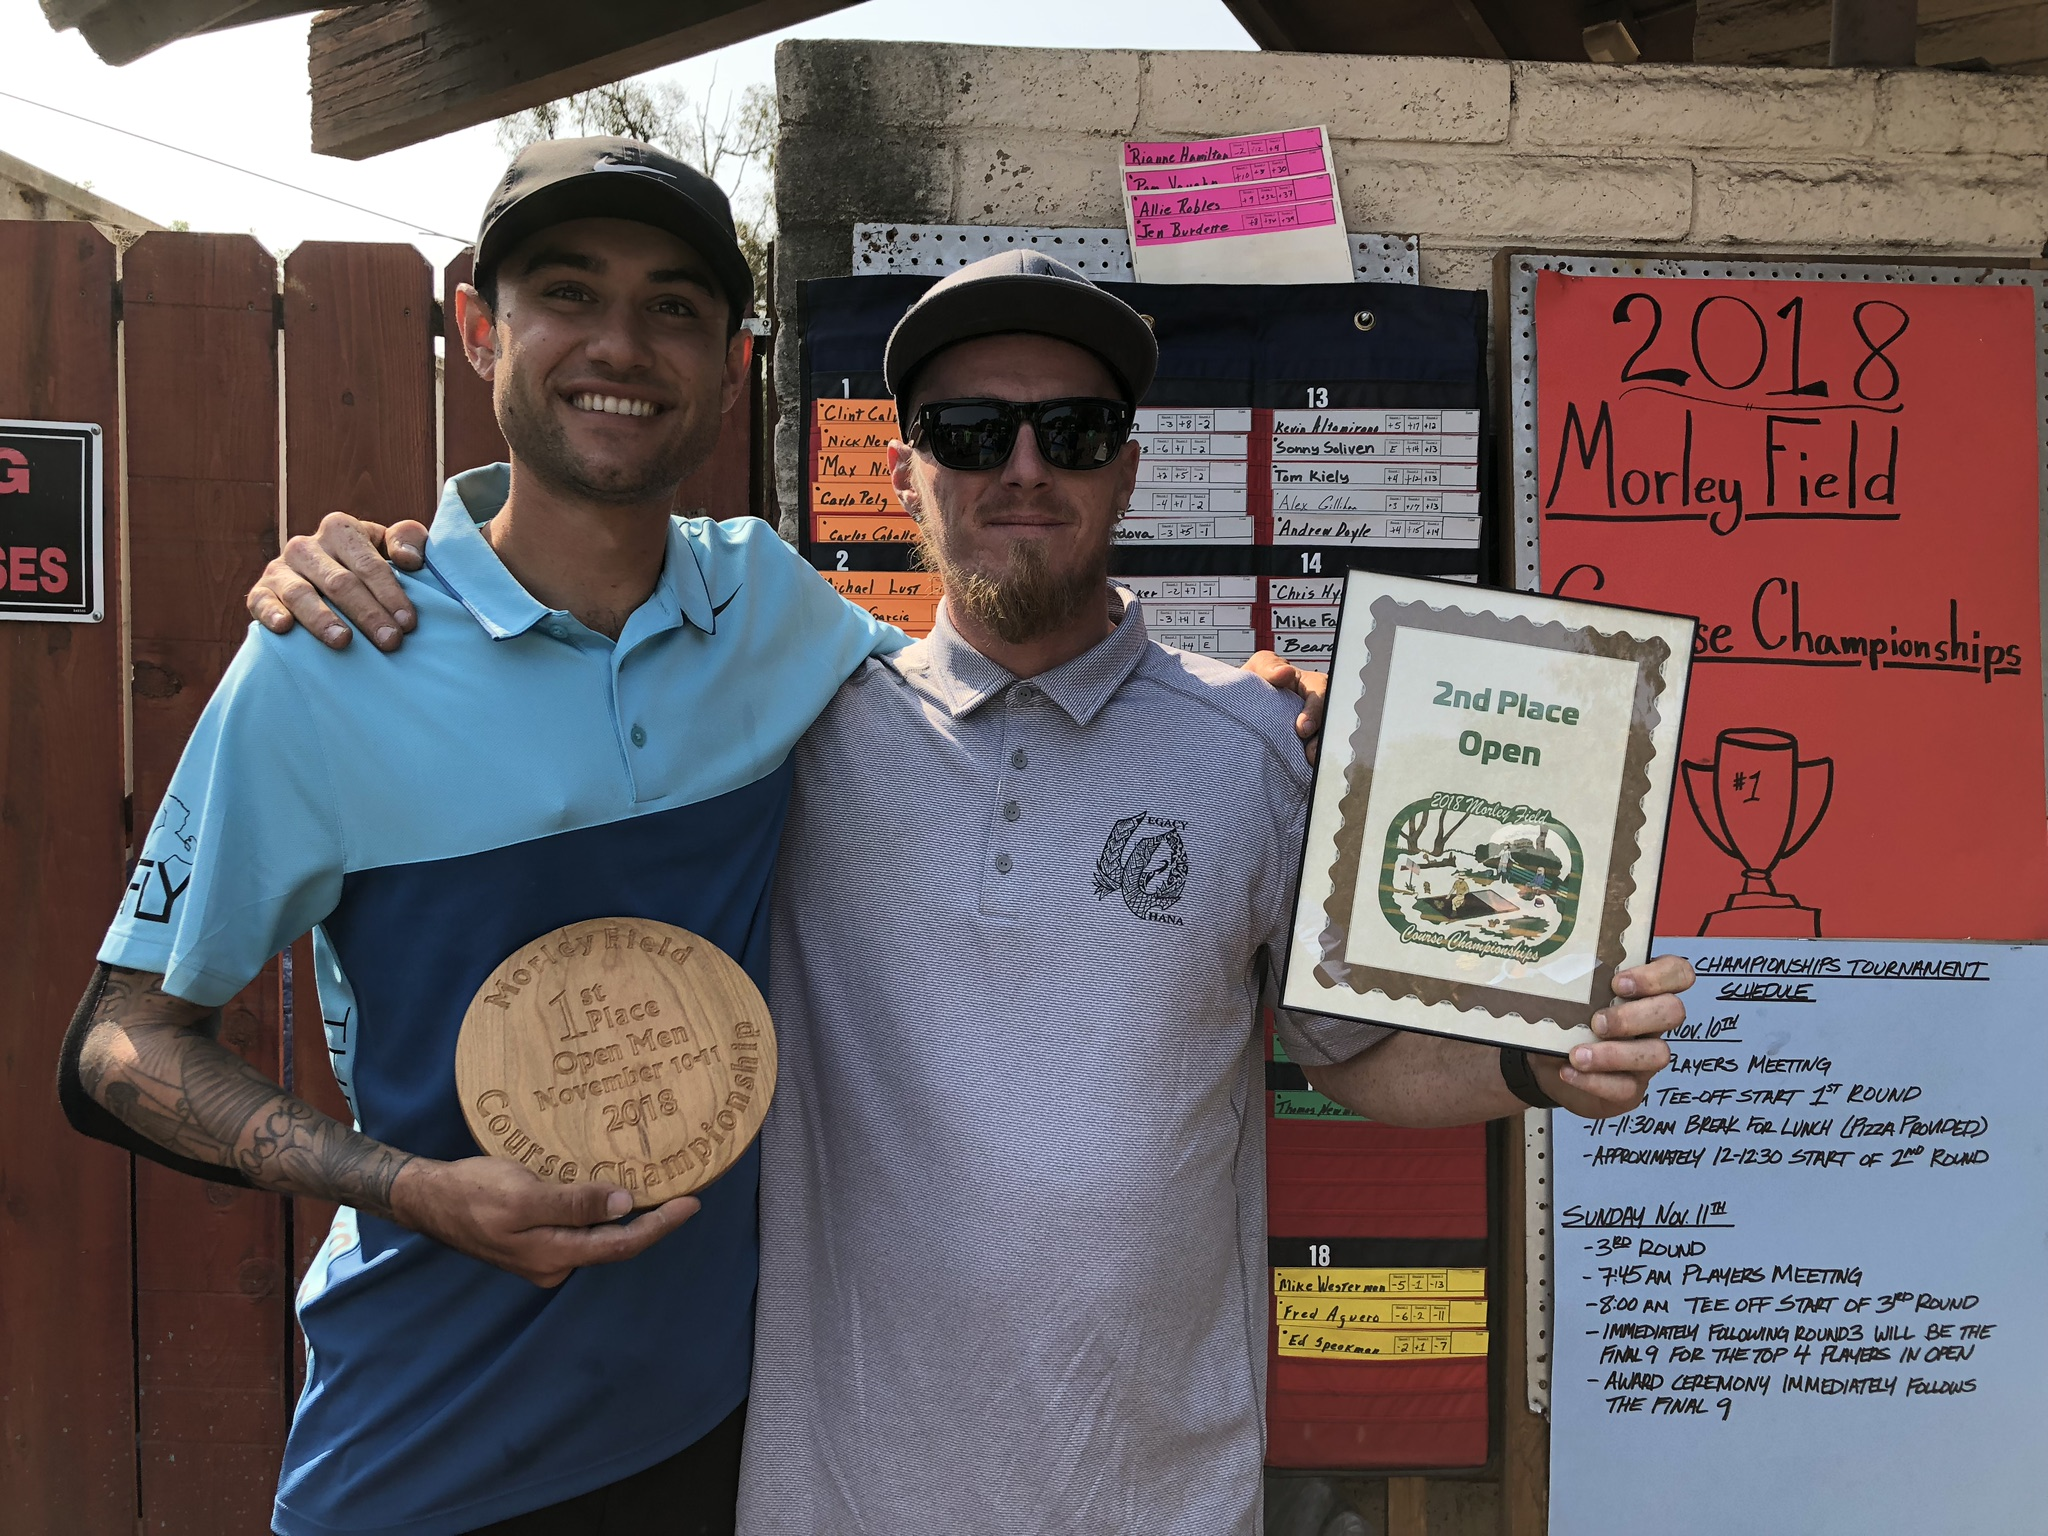 Clint Calvin (Course Champion) and Nick Newton (2nd Place Open)